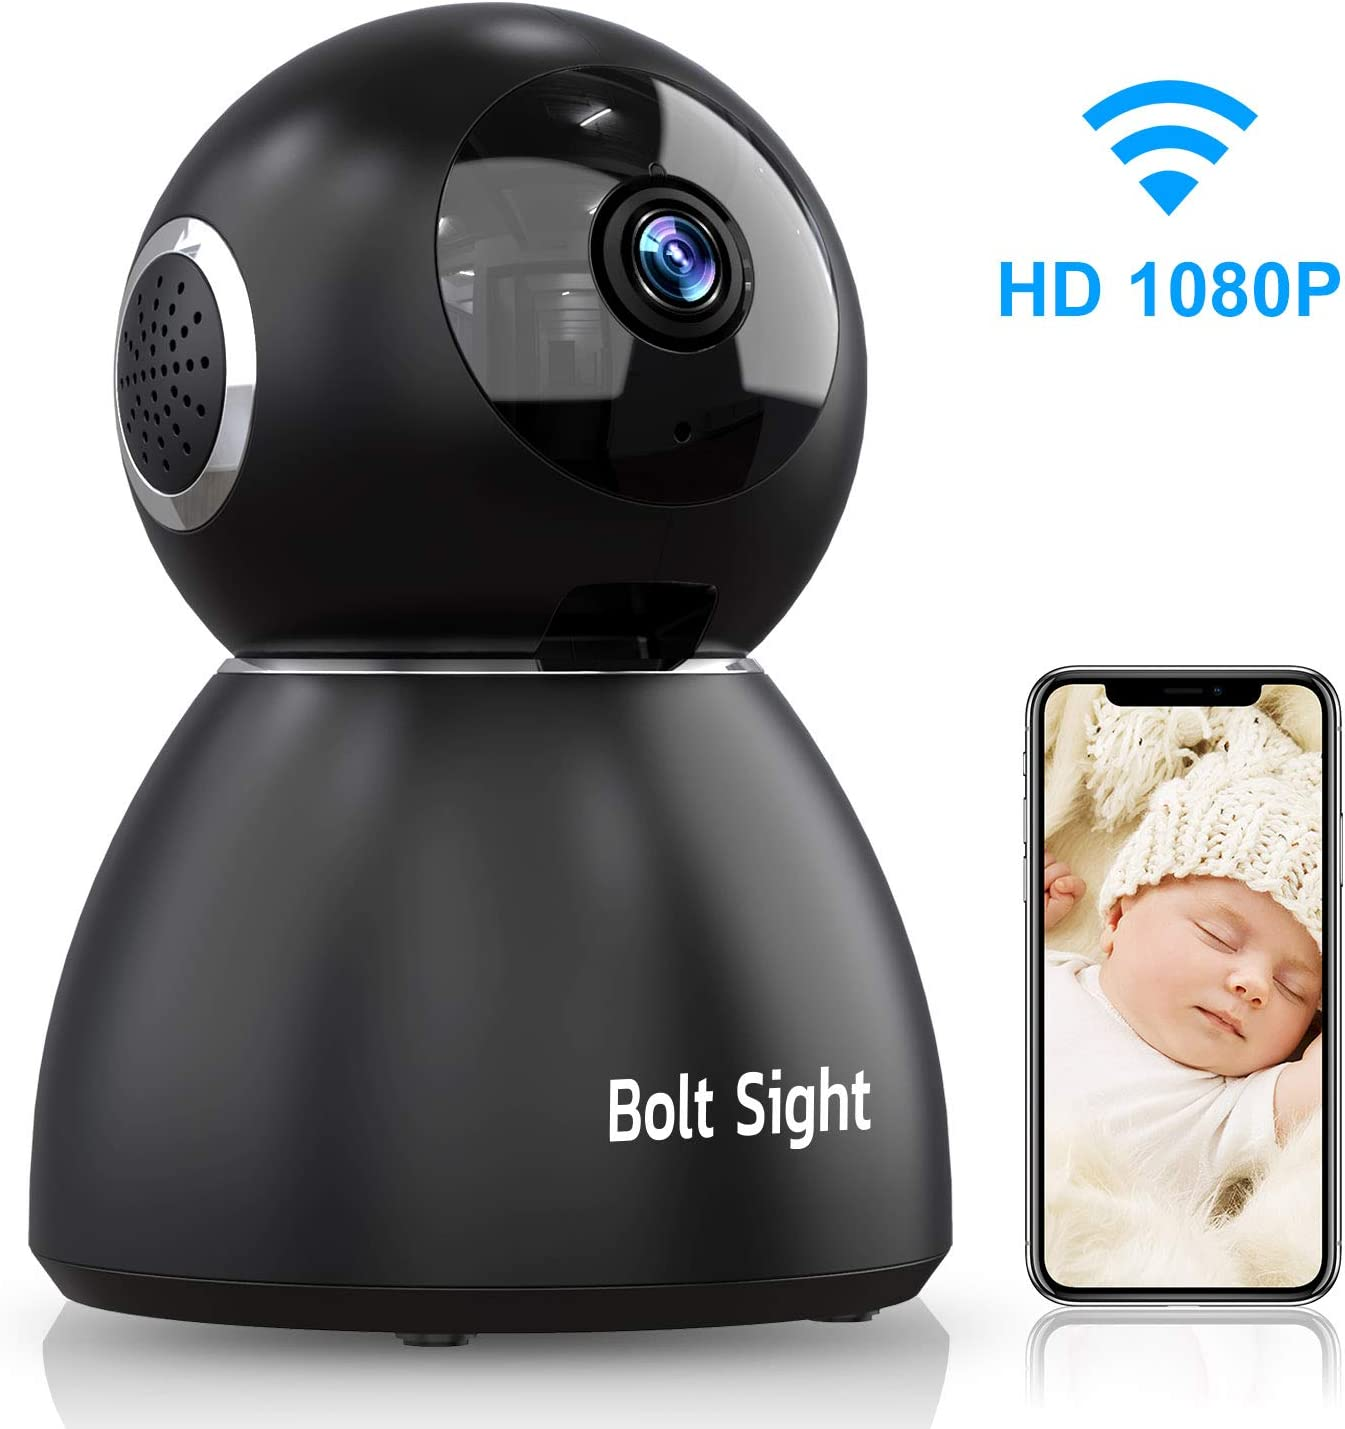 Indoor Home Security Camera WiFi – Pet Camera Two Way Audio and Video – Baby Monitor Dome Cam – HD 1080P 25Fps Upgraded Night Vision,Motion Sound Detection,Two-Way Audio,355 Angle for Home Security